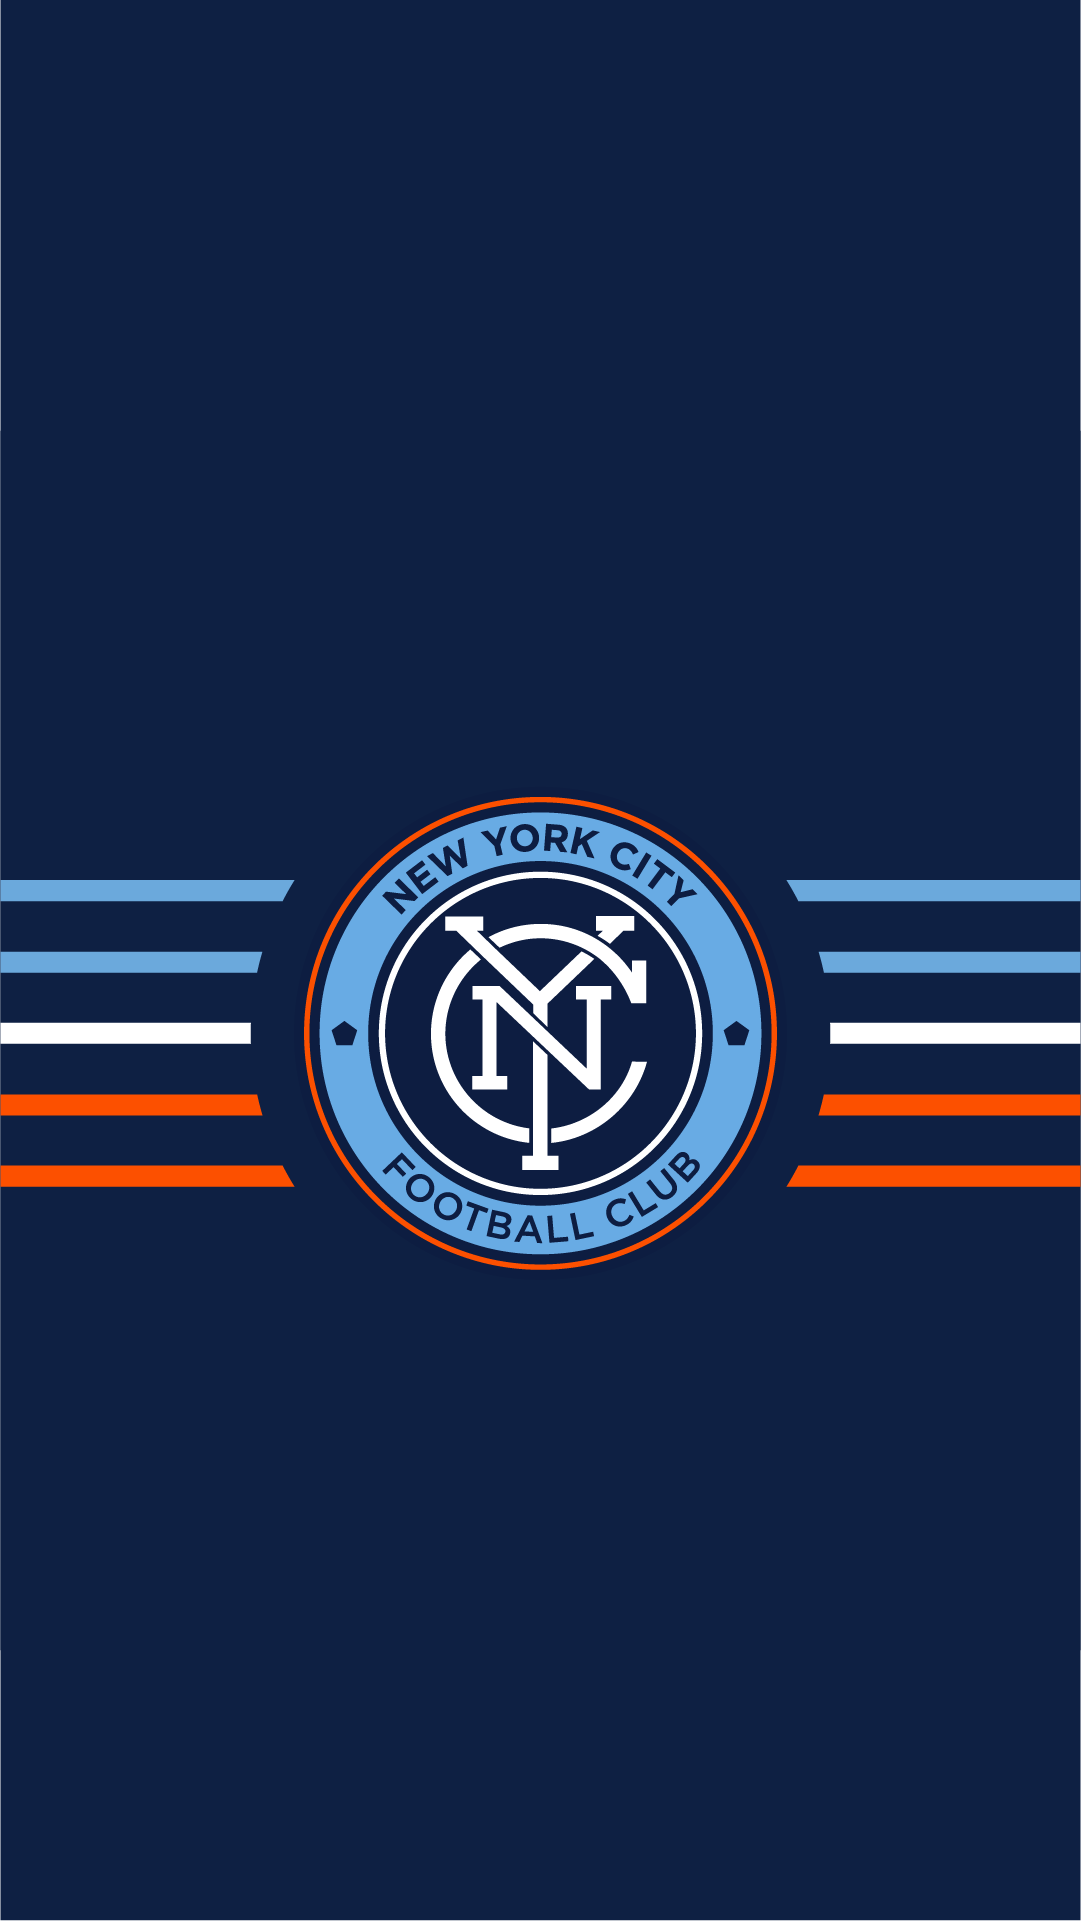 New York City FC Background Wallpaper New York City FC 1081x1921